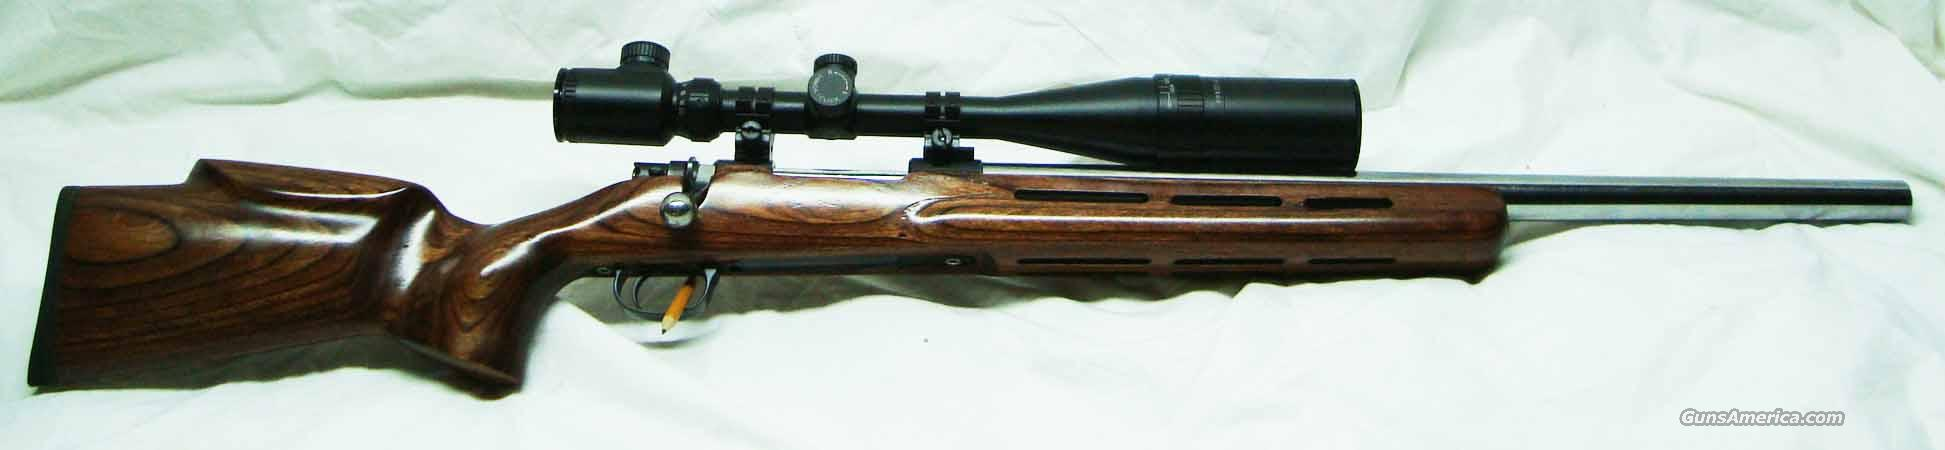 Custom 6mm Rem w/ Charles Daly Mauser Action  Guns > Rifles > Custom Rifles > Bolt Action